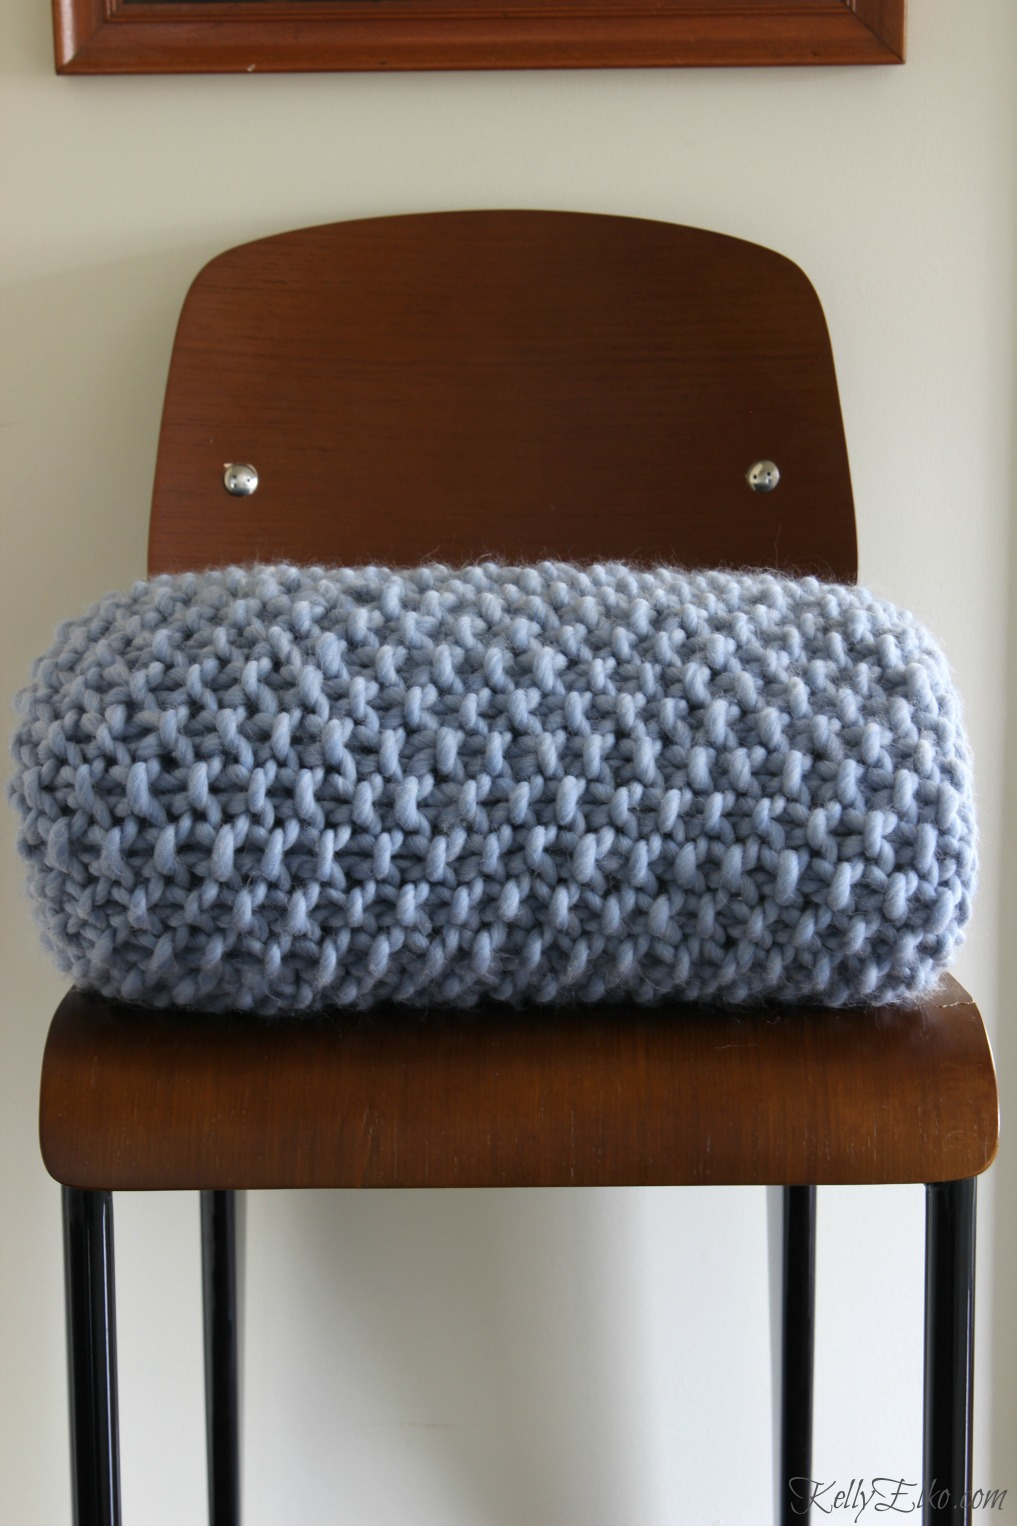 Love this beautiful chunky wool blanket - see how easy it is to make your own kellyelko.com